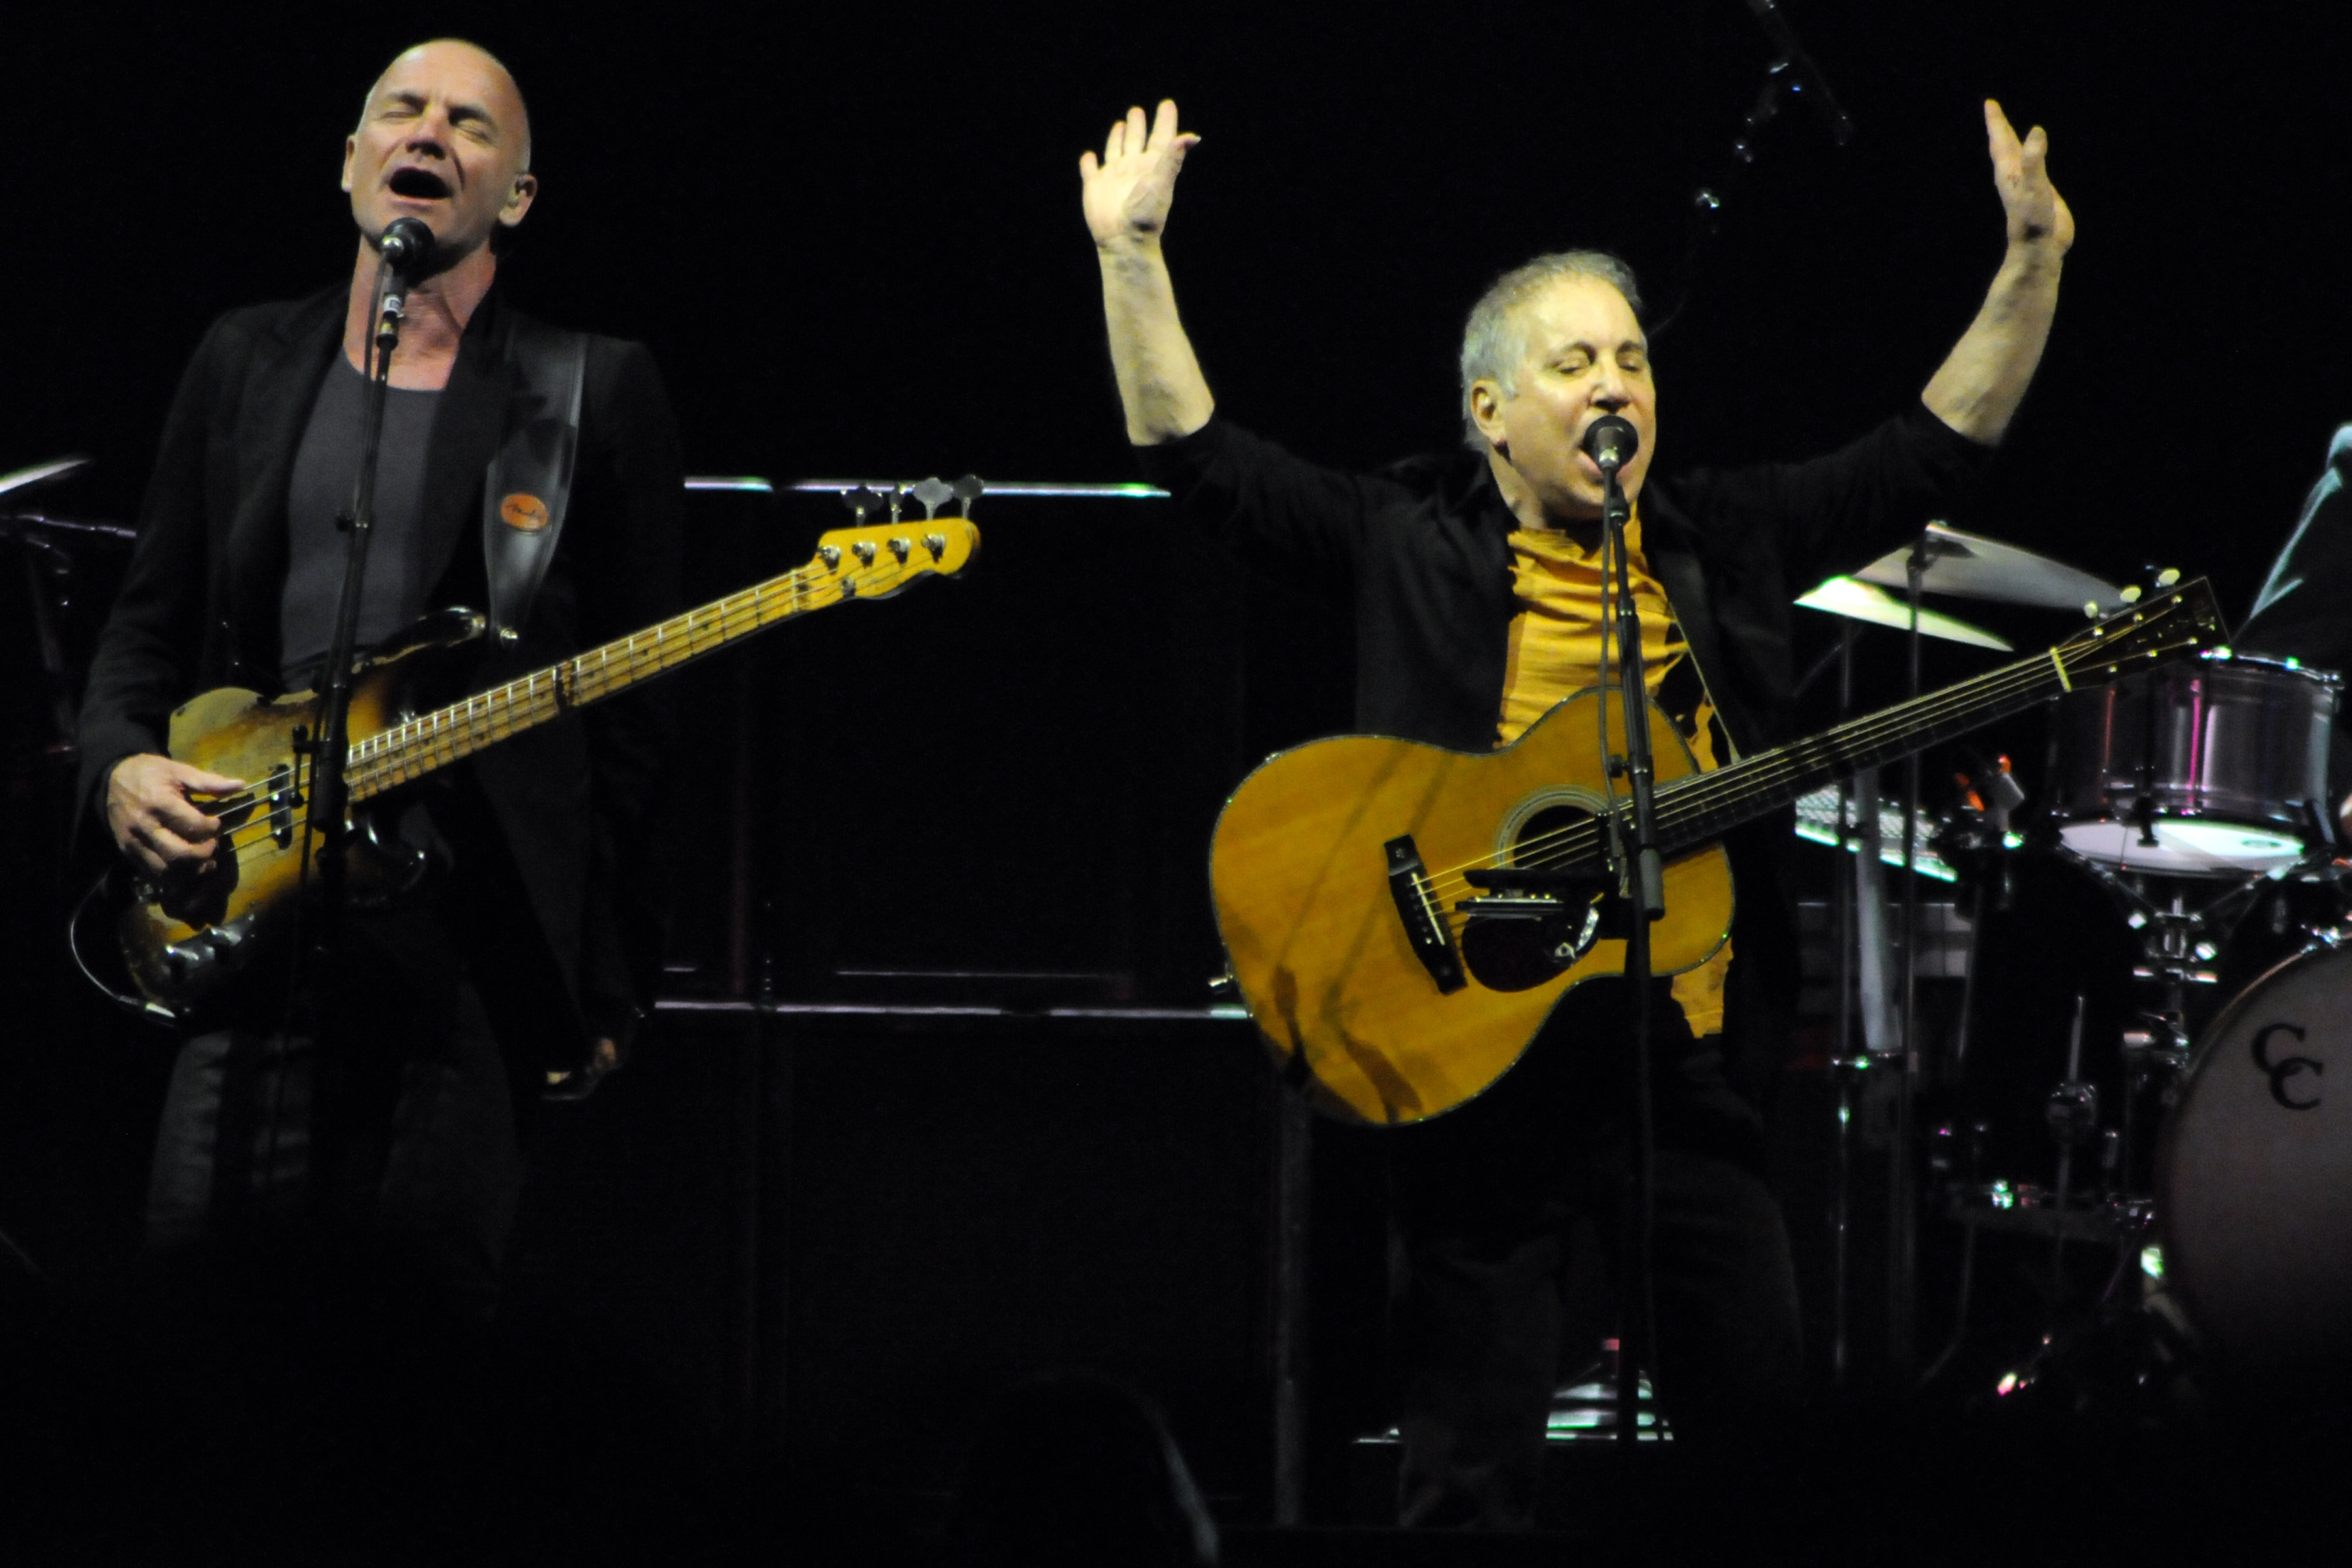 Paul Simon and Sting will perform as part of their joint tour On Stage March 14, 2015 at the O2 Arena!